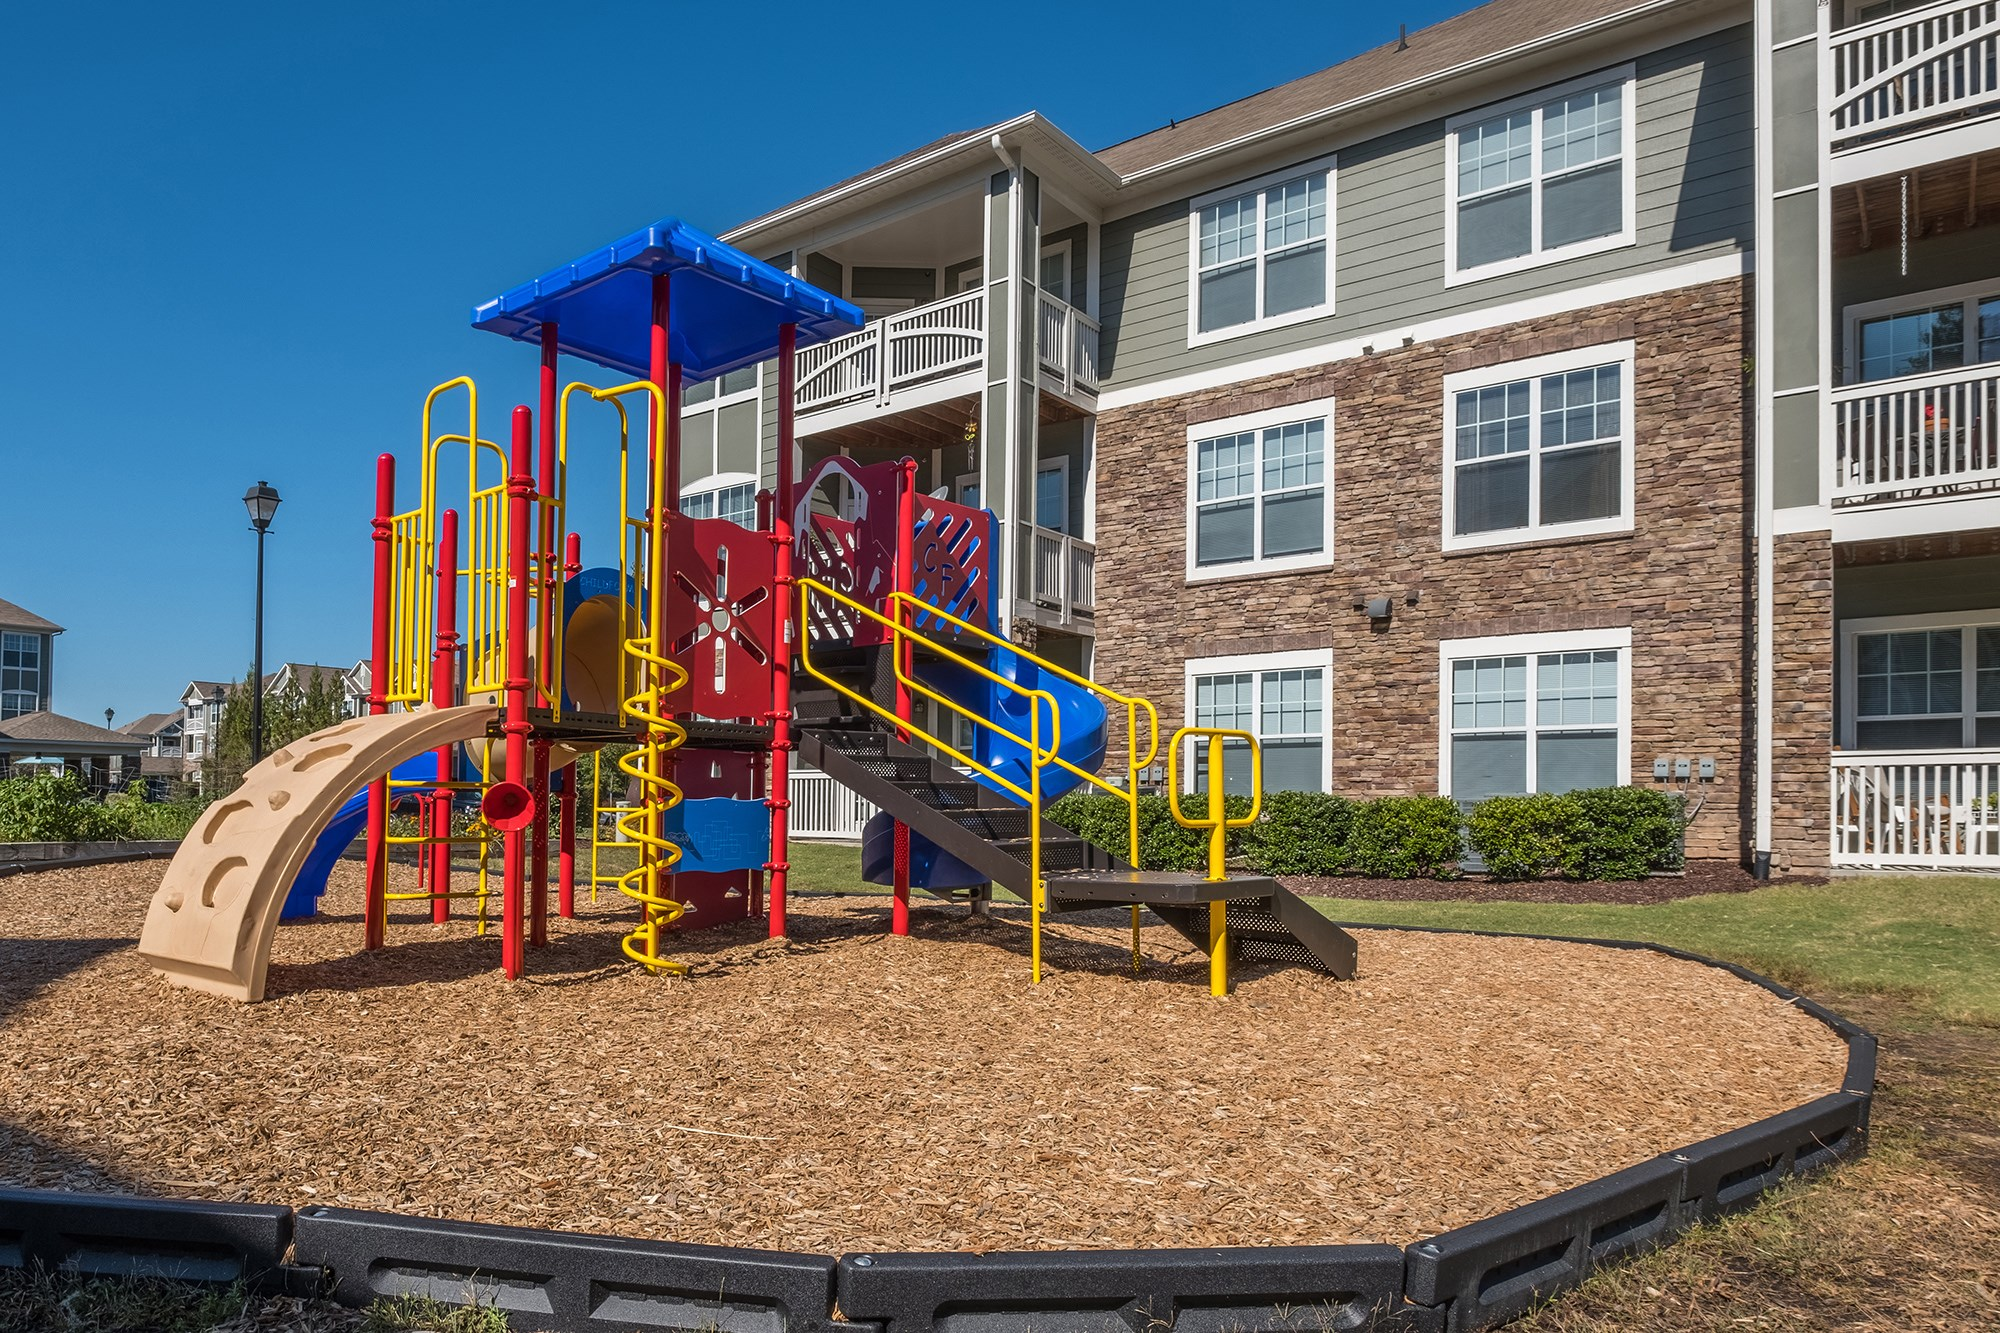 Playground at View at Legacy Oaks Apartments in Knightdale, NC